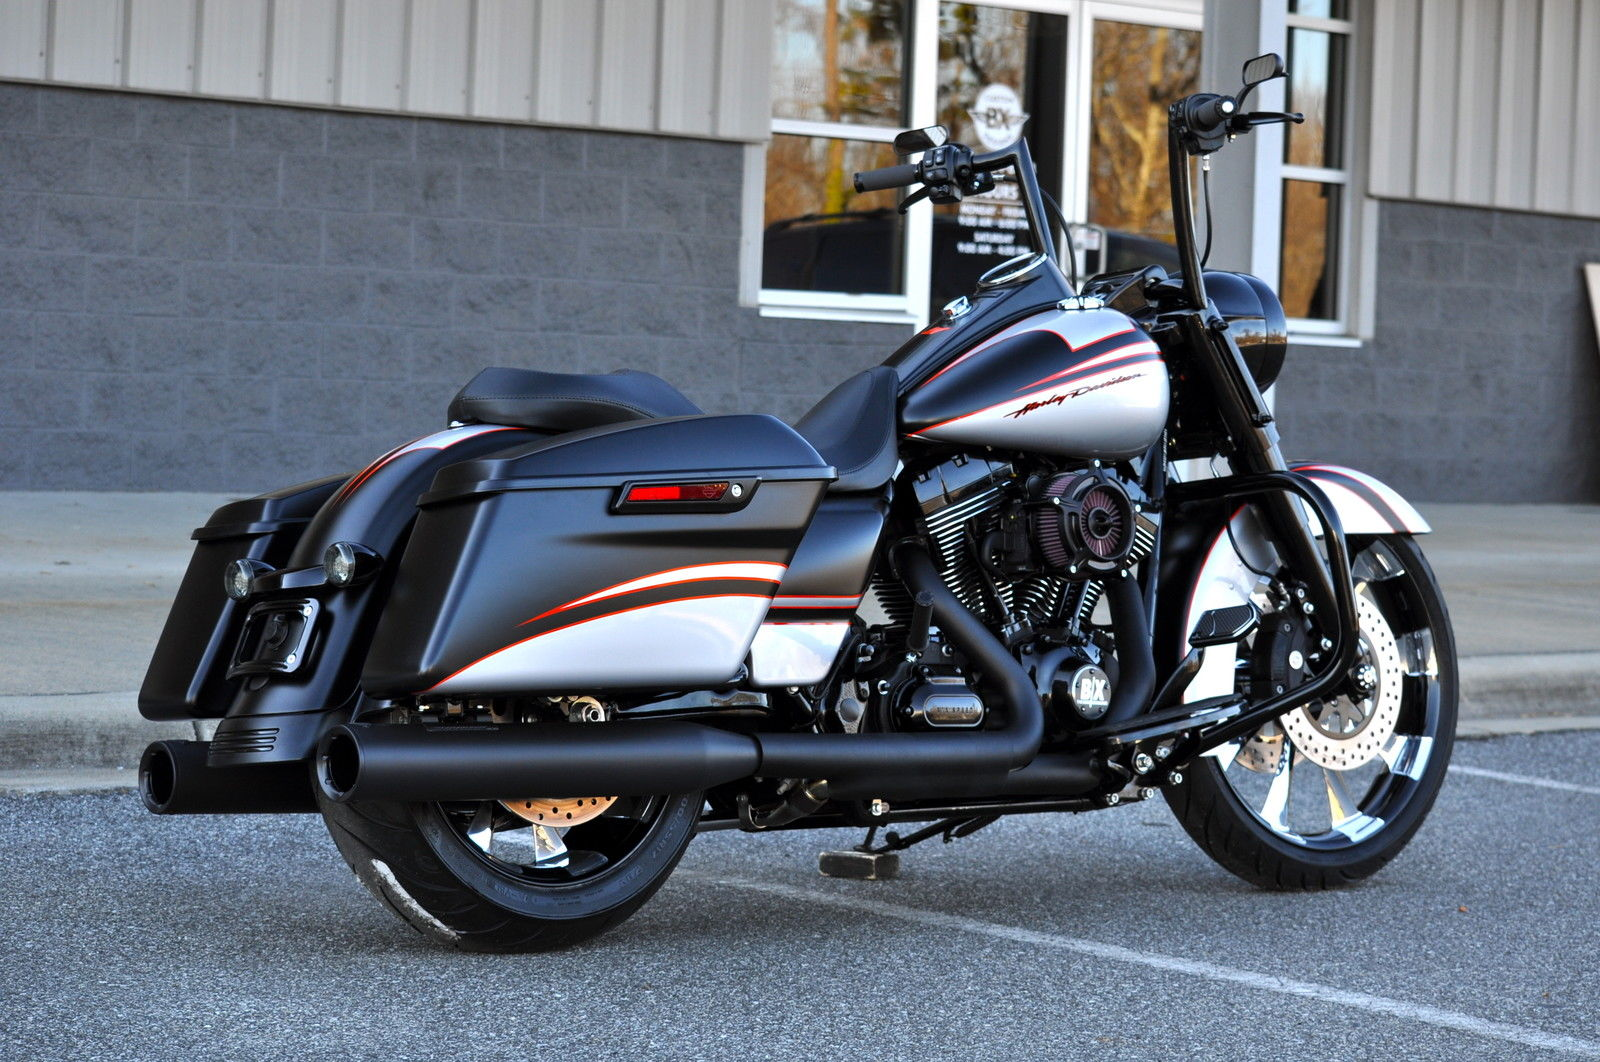 2015 road king custom a b s mint 15 in xtra 39 s only 925 miles. Black Bedroom Furniture Sets. Home Design Ideas